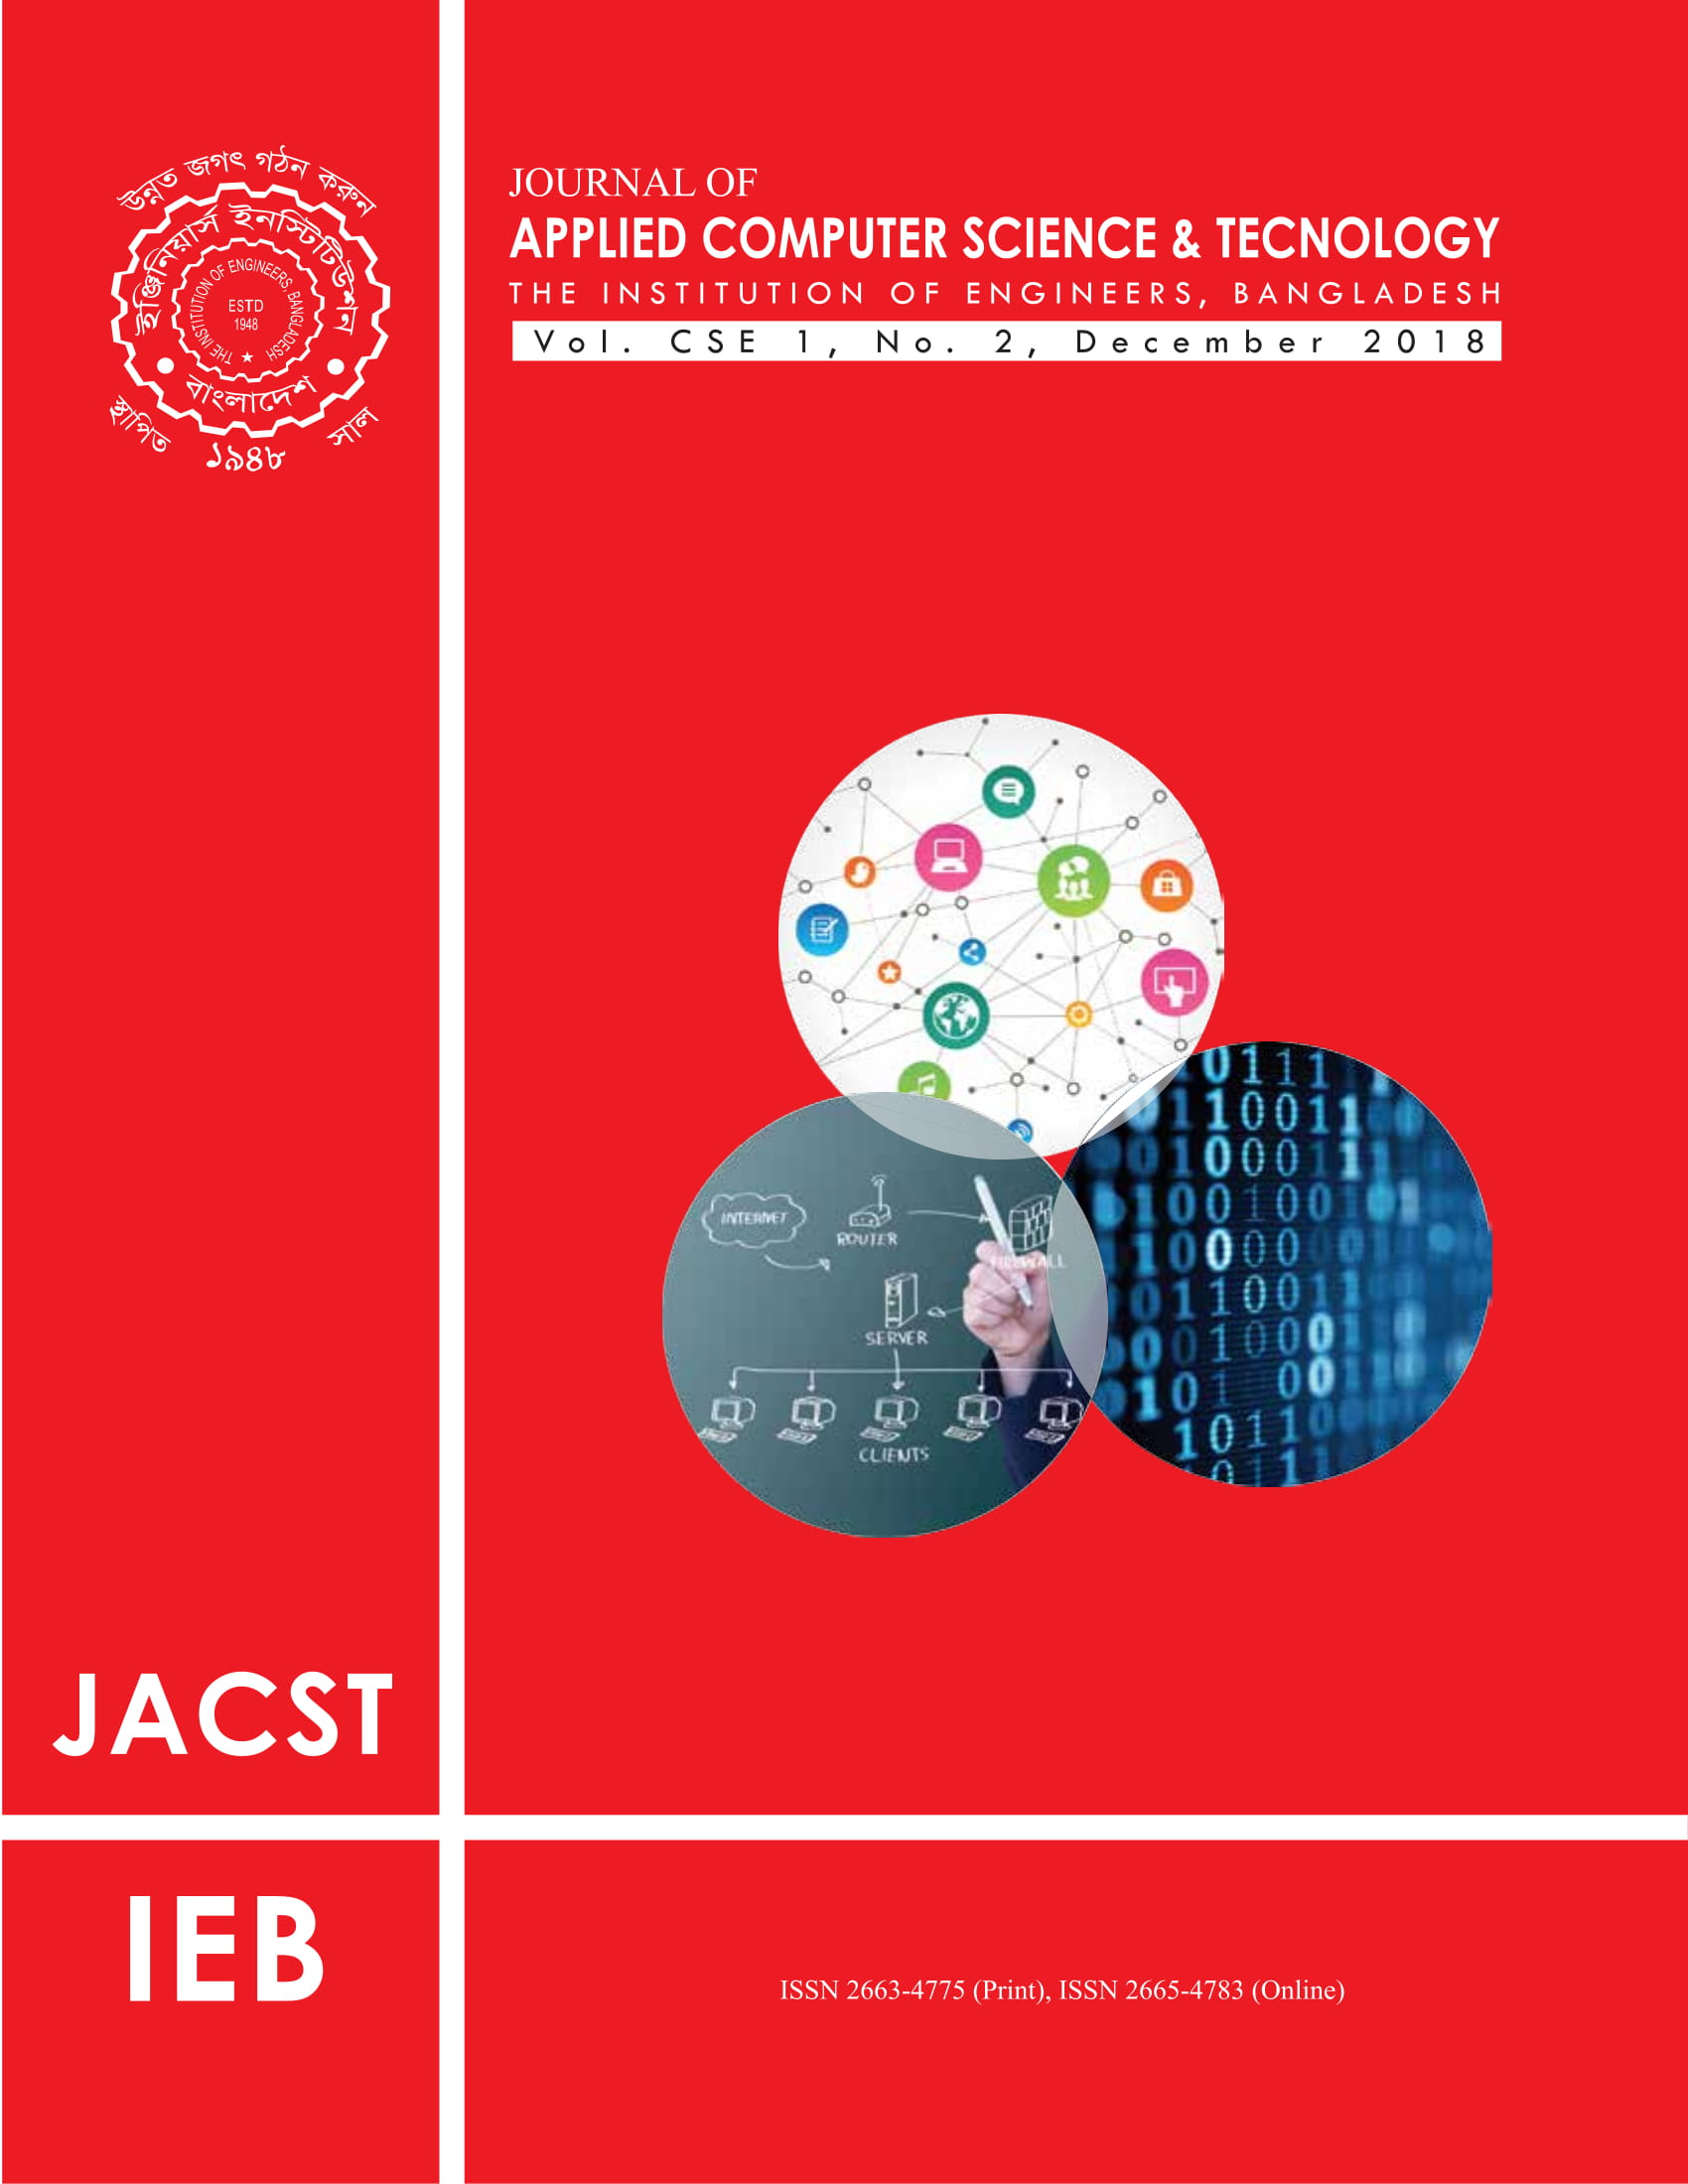 Journal of Applied Computer Science & Technology Vol 1, CSE 1, No. 2, December 2018